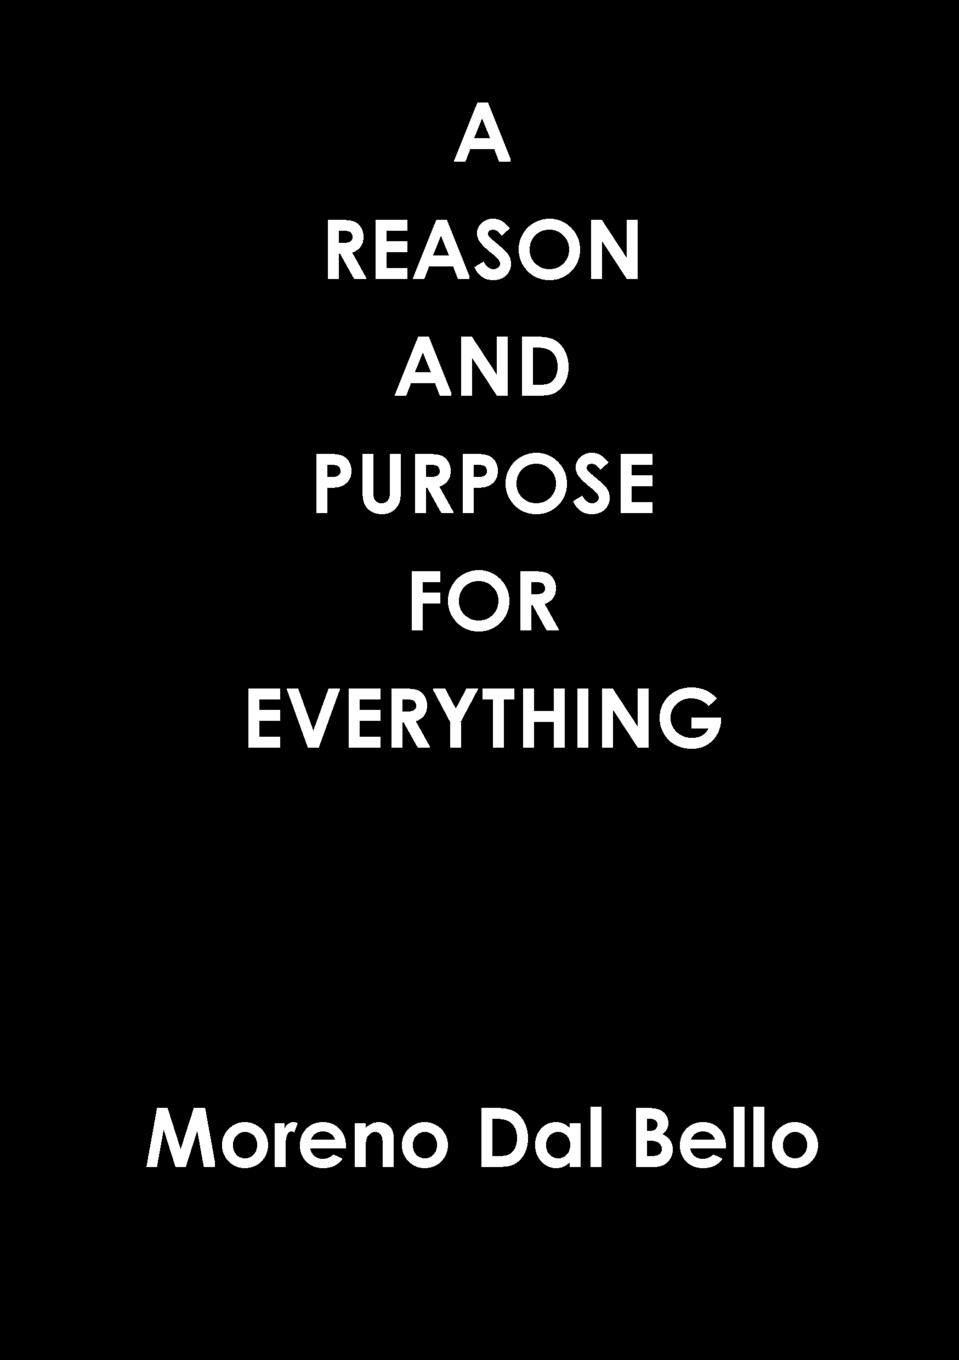 Moreno Dal Bello A REASON AND PURPOSE FOR EVERYTHING suggest suggest pb 293298